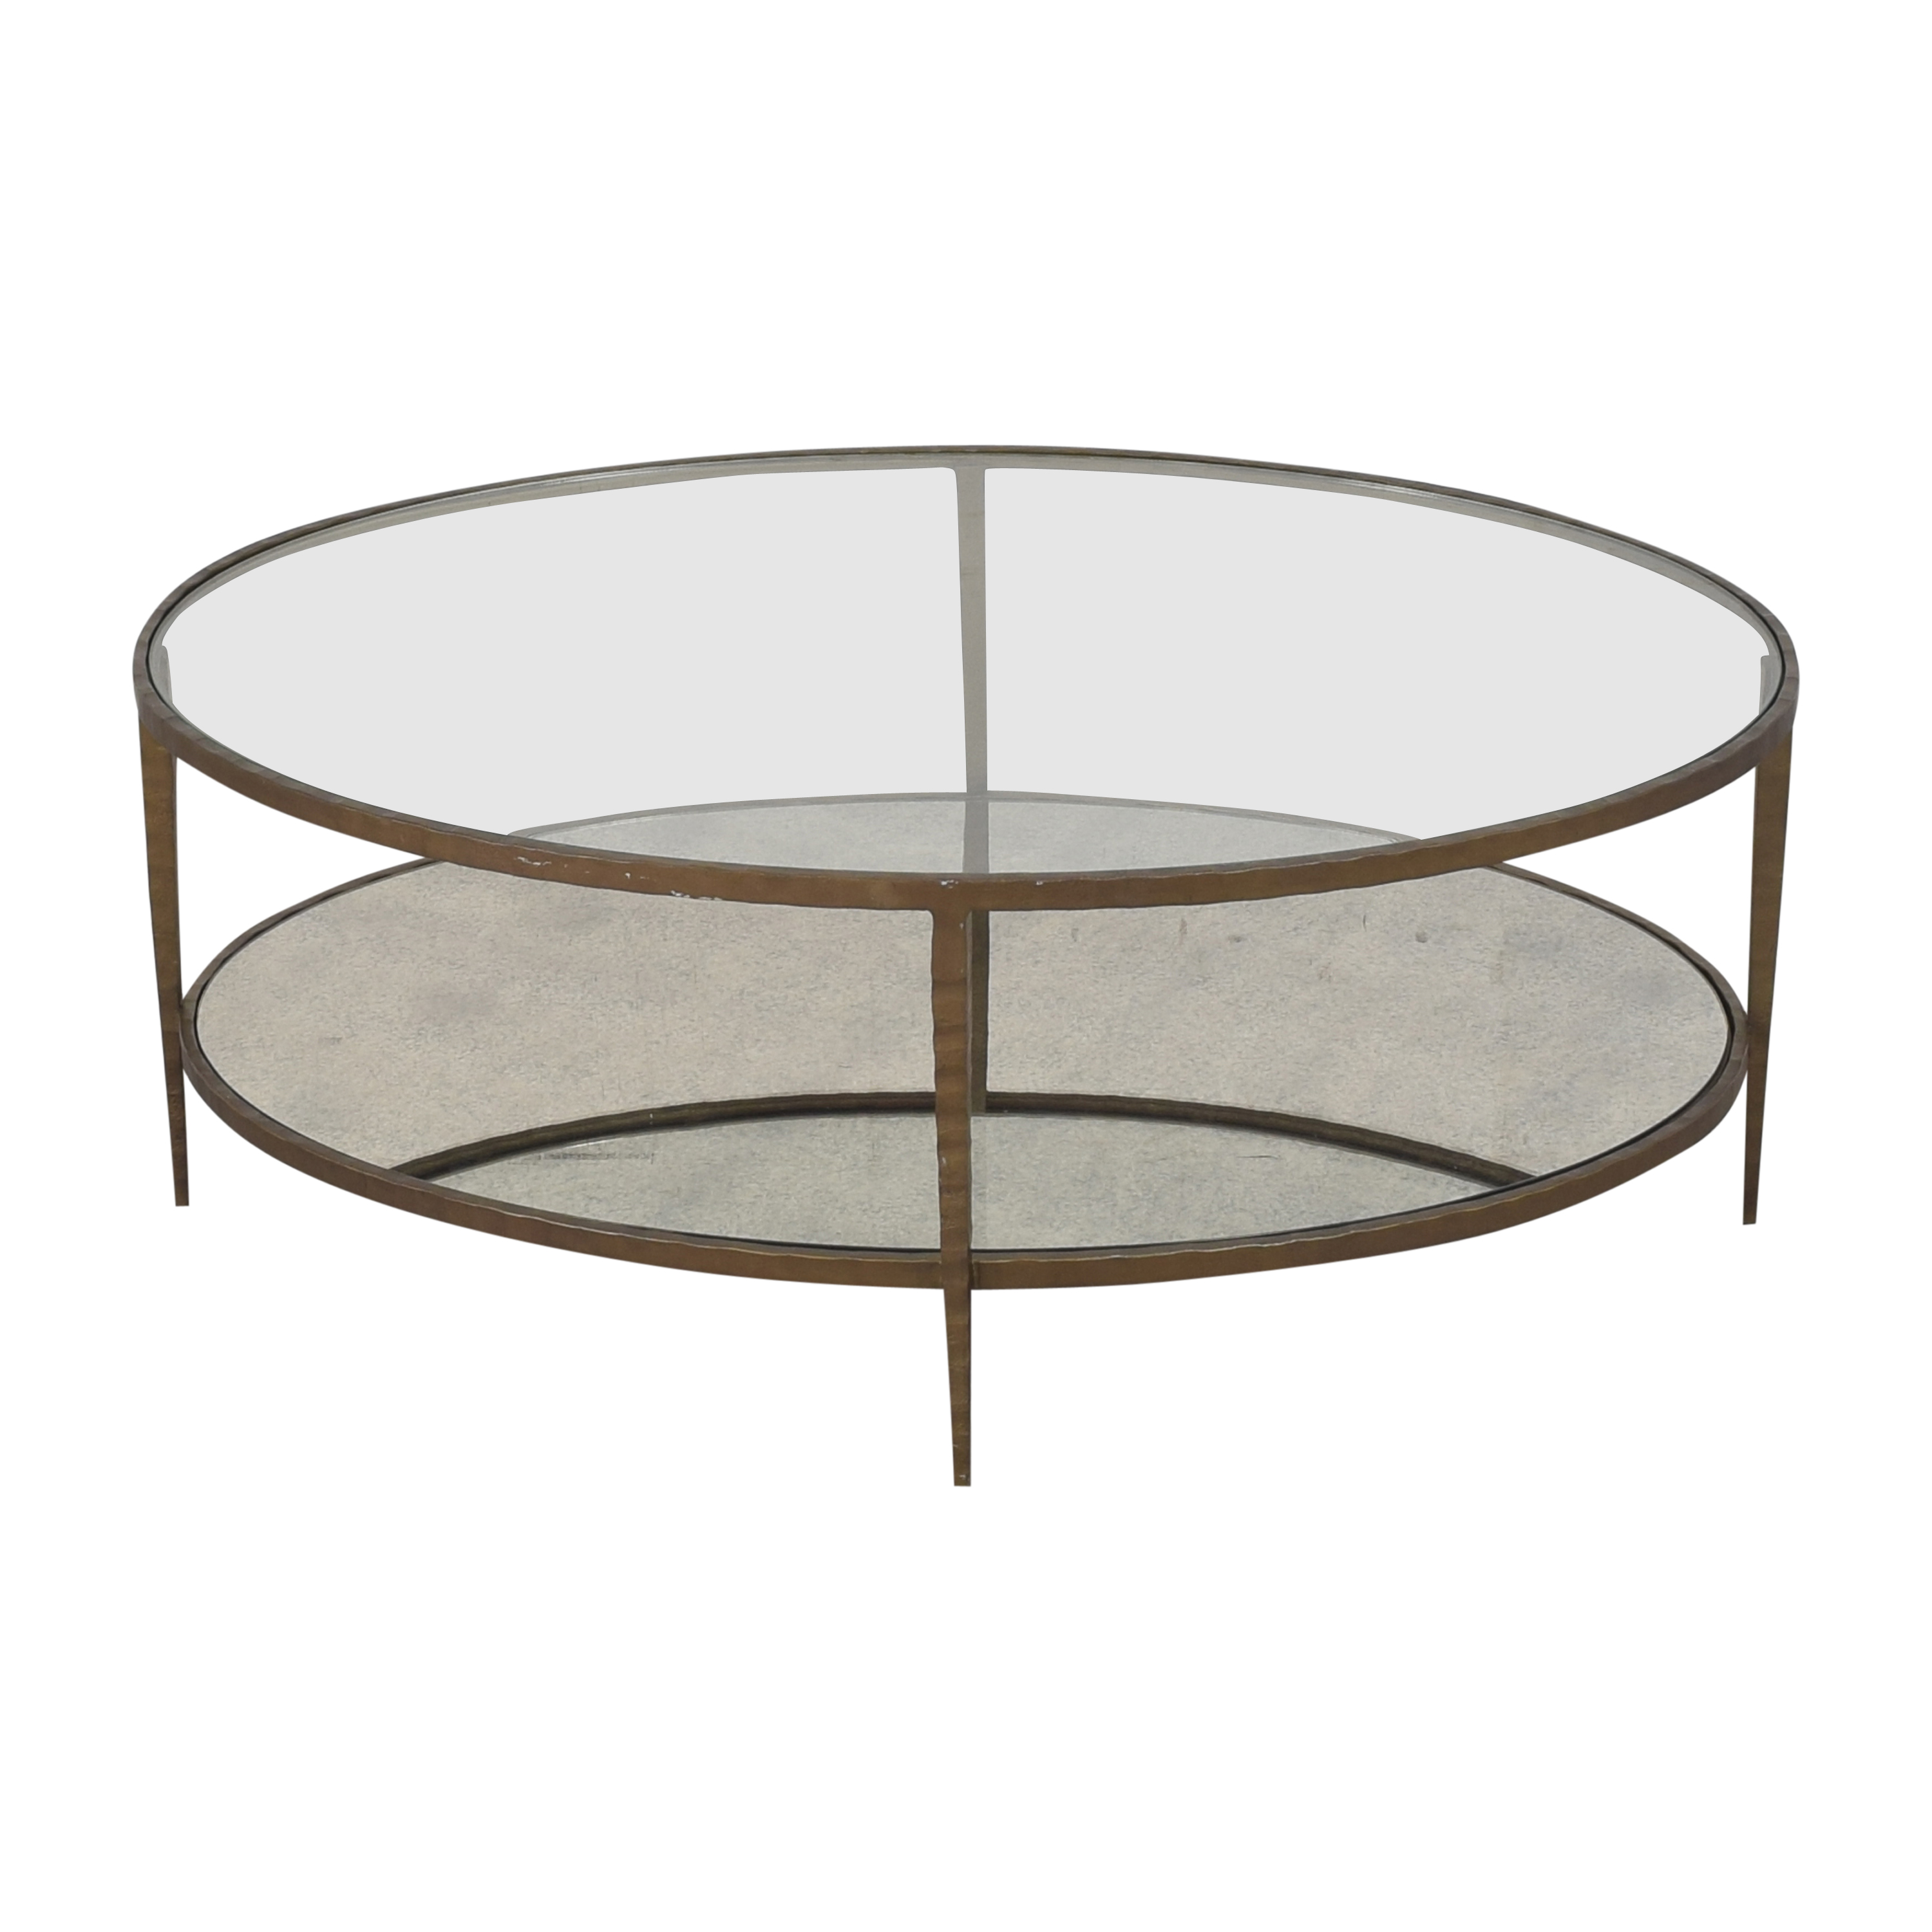 shop Crate & Barrel Clairemont Oval Coffee Table Crate & Barrel Coffee Tables